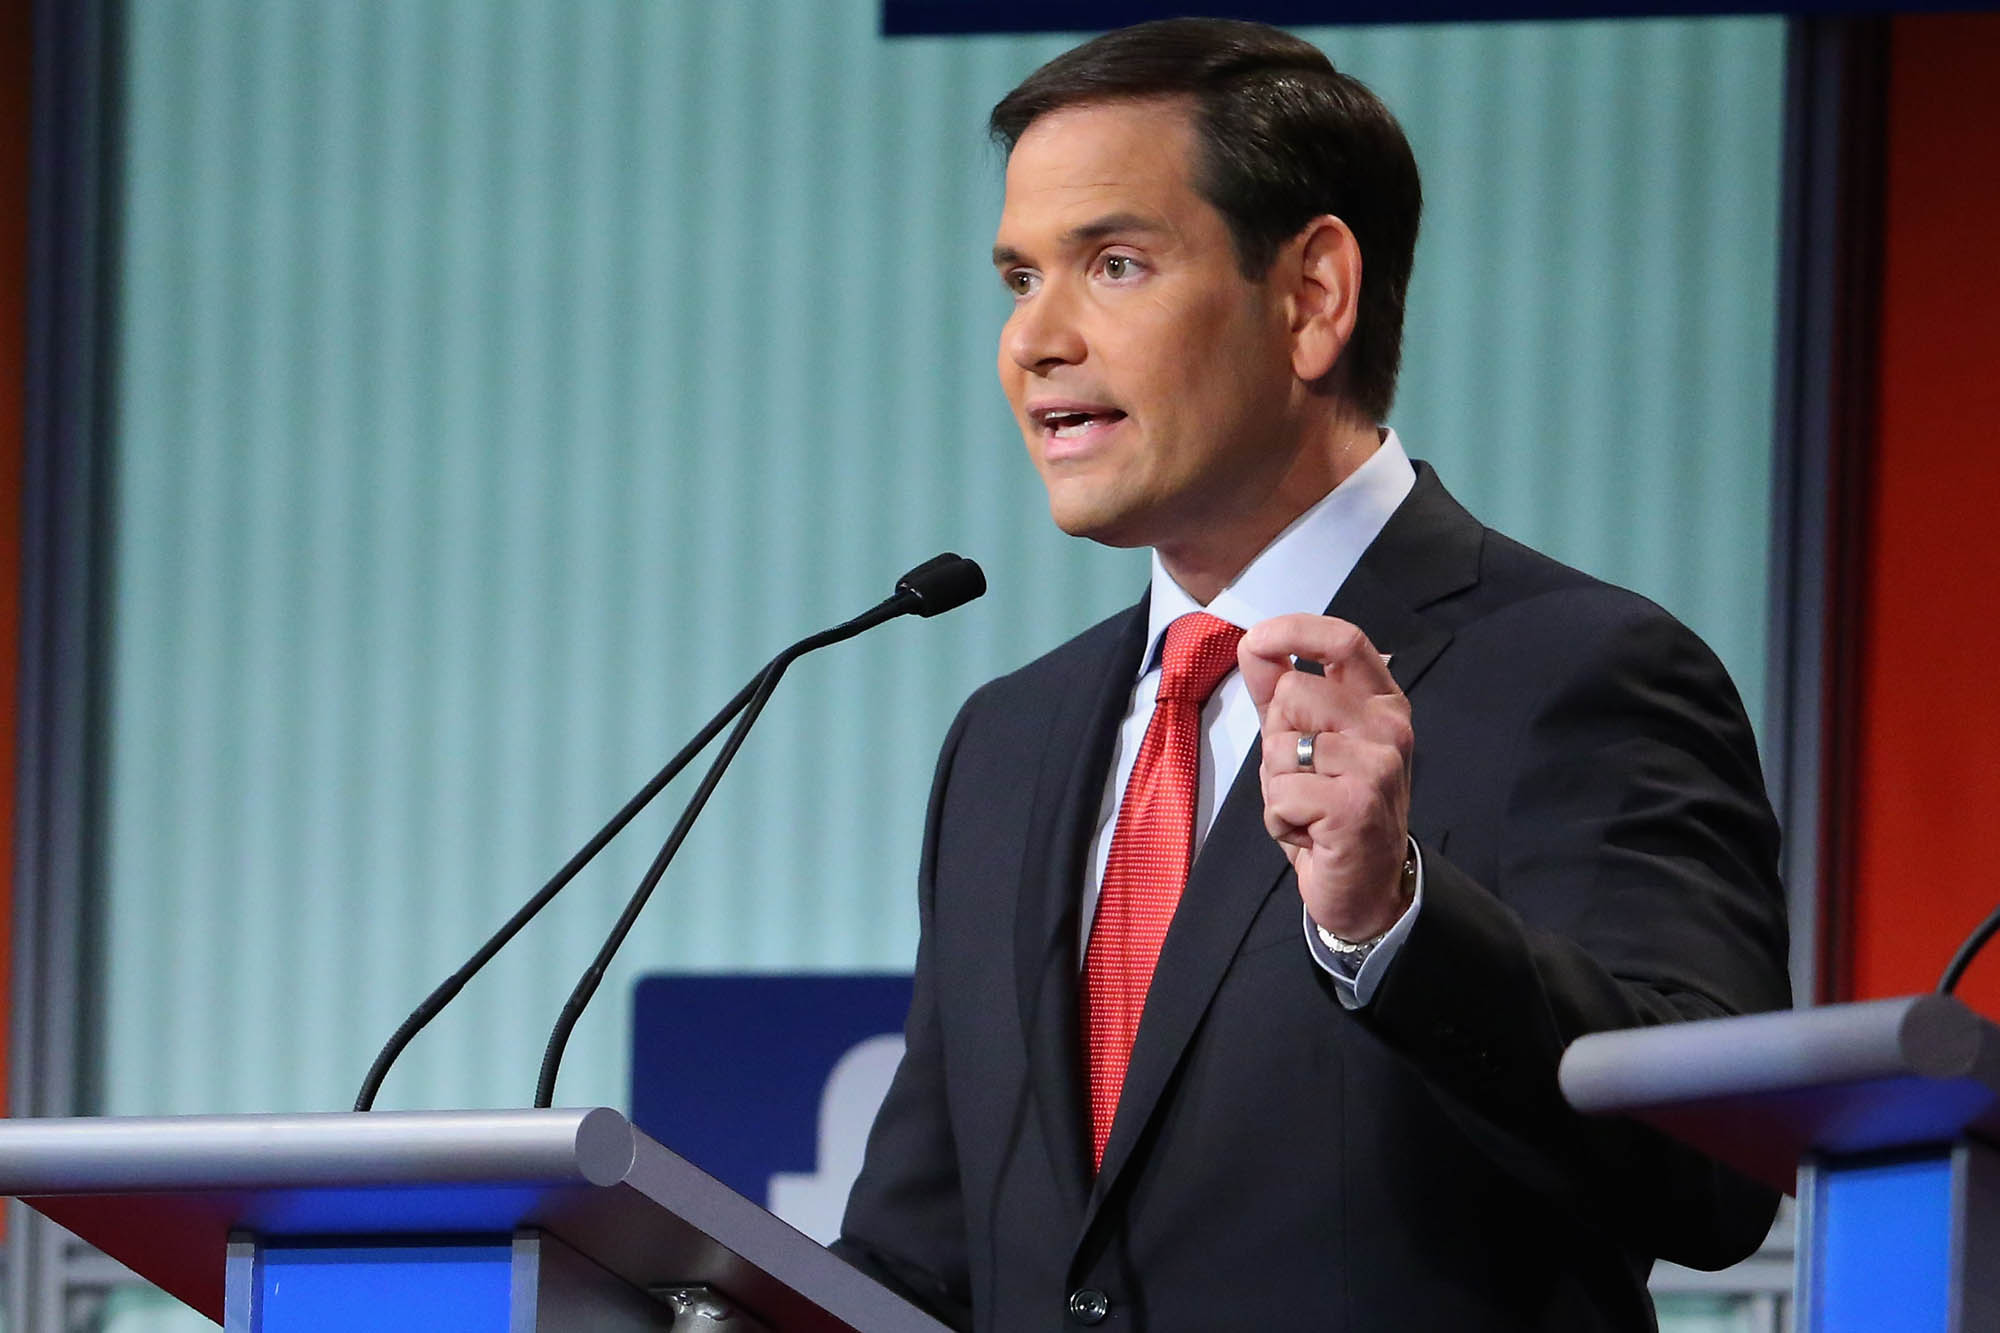 CLEVELAND, OH - AUGUST 06:  Republican presidential candidate Sen. Marco Rubio (R-FL) participates in the first prime-time presidential debate hosted by FOX News and Facebook at the Quicken Loans Arena August 6, 2015 in Cleveland, Ohio. The top-ten GOP candidates were selected to participate in the debate based on their rank in an average of the five most rece